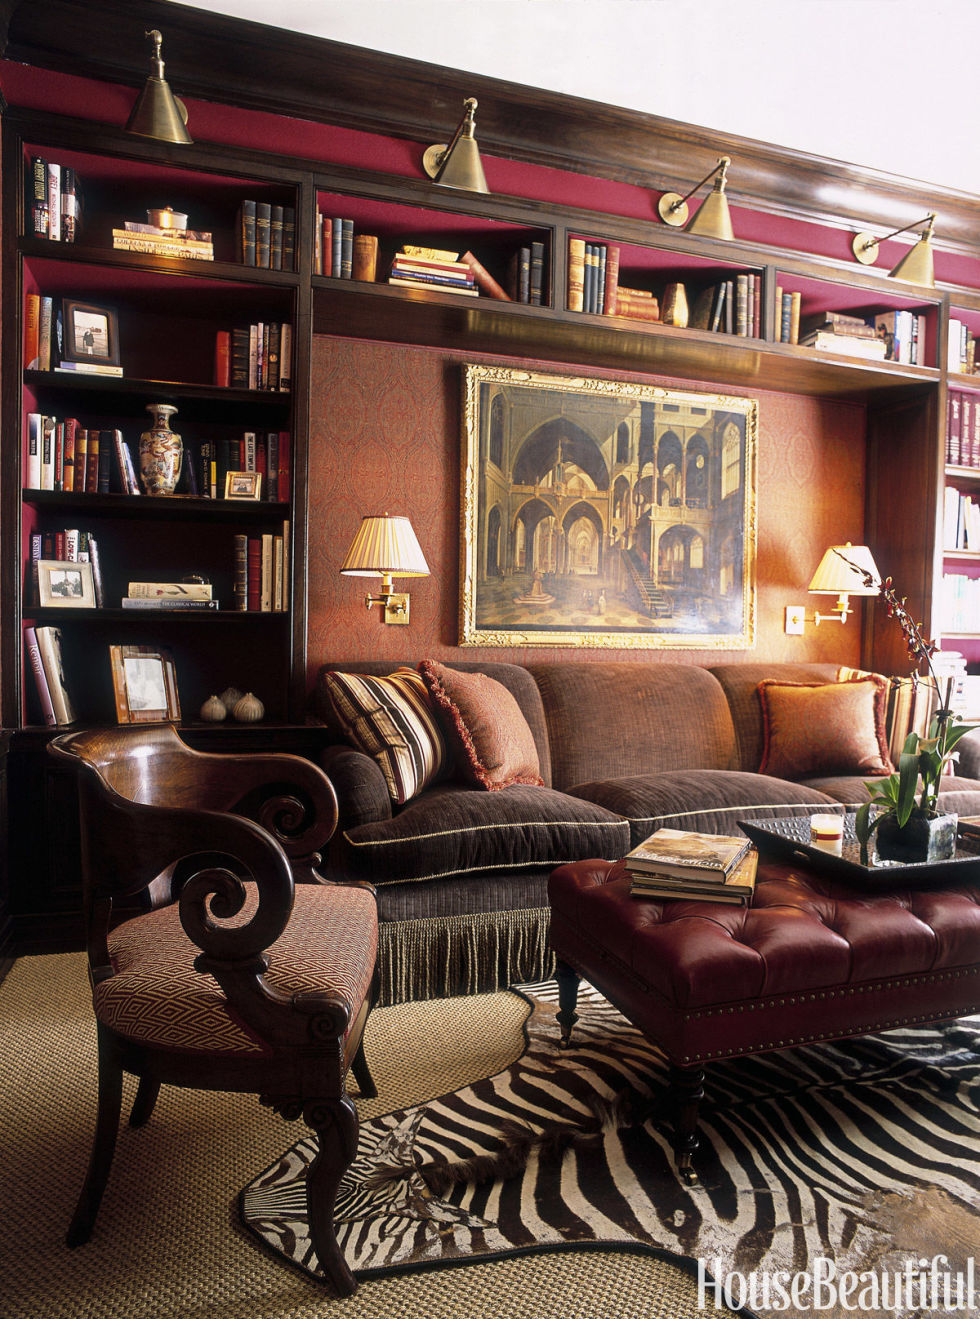 Super Home Library Design Ideas Pictures Of Home Library Decor Largest Home Design Picture Inspirations Pitcheantrous